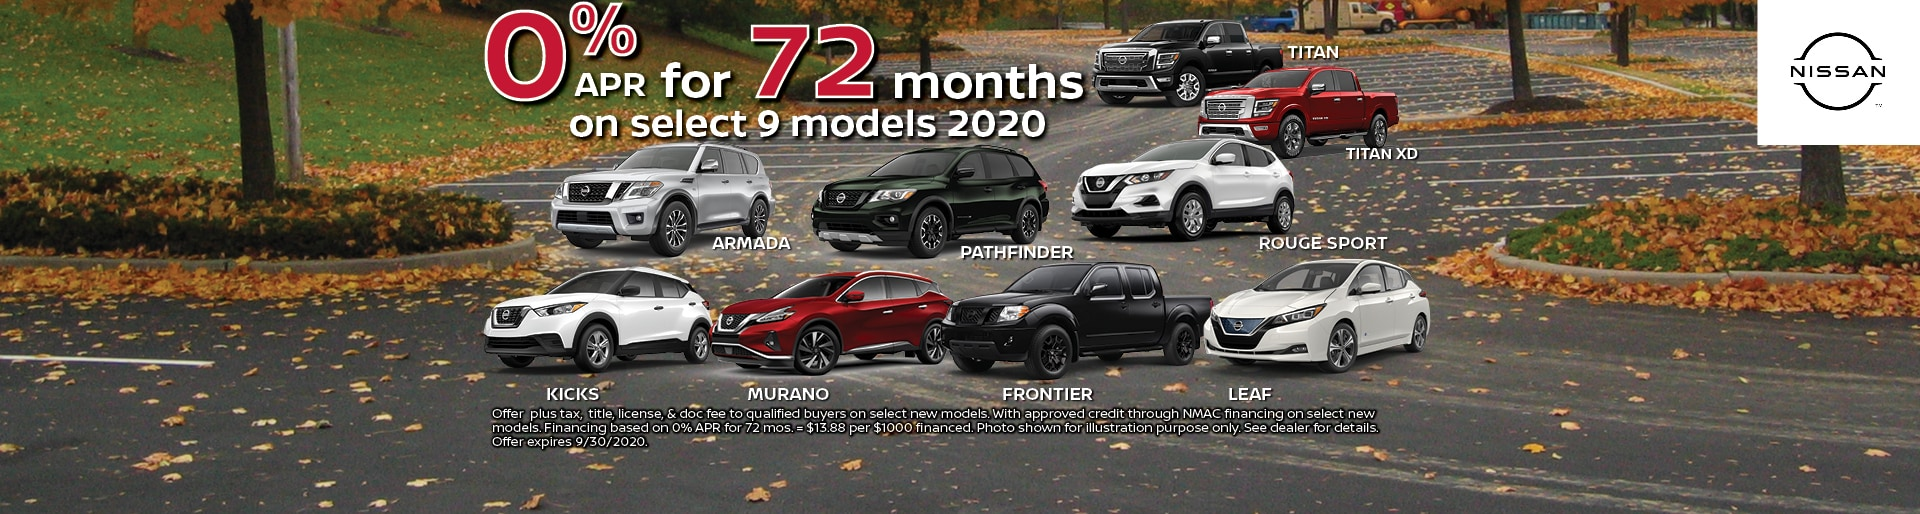 0% for 72 Months at Hugh White Nissan Lancaster, OH